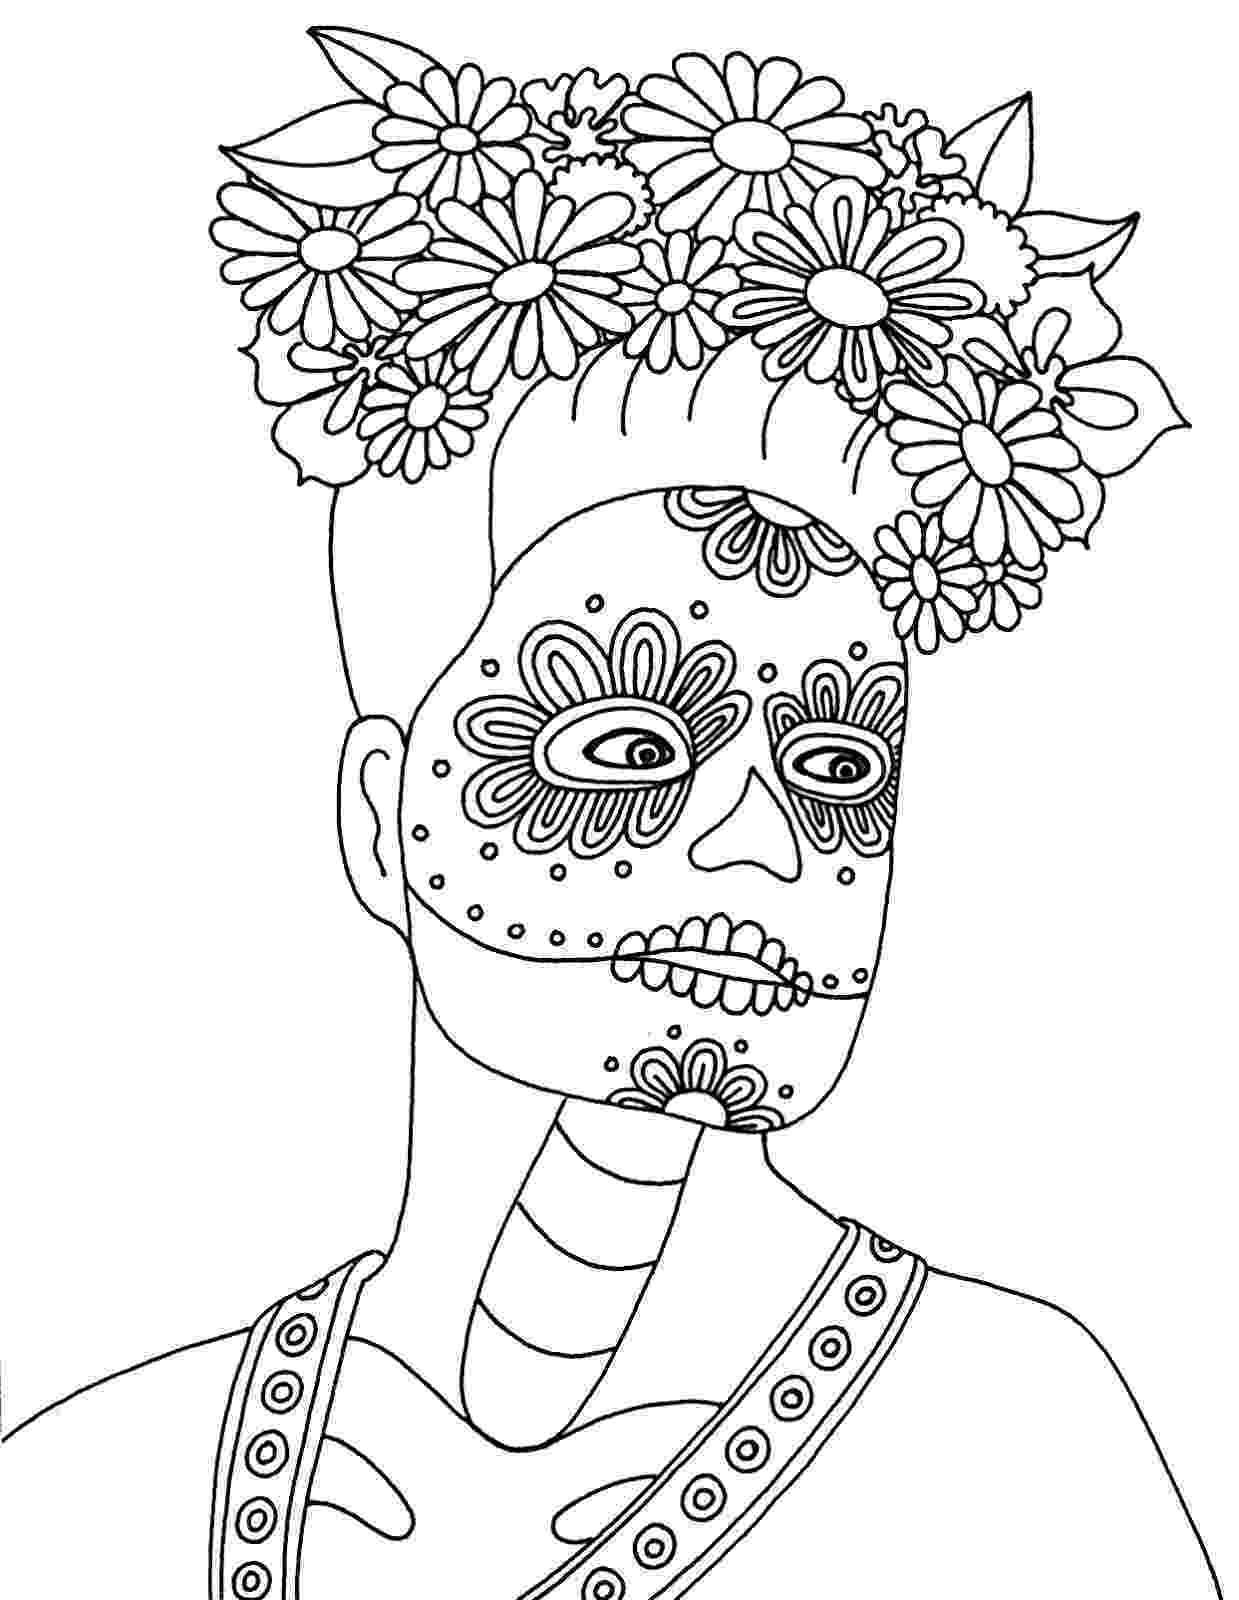 person coloring page people tumbler coloring pages print coloring coloring page person